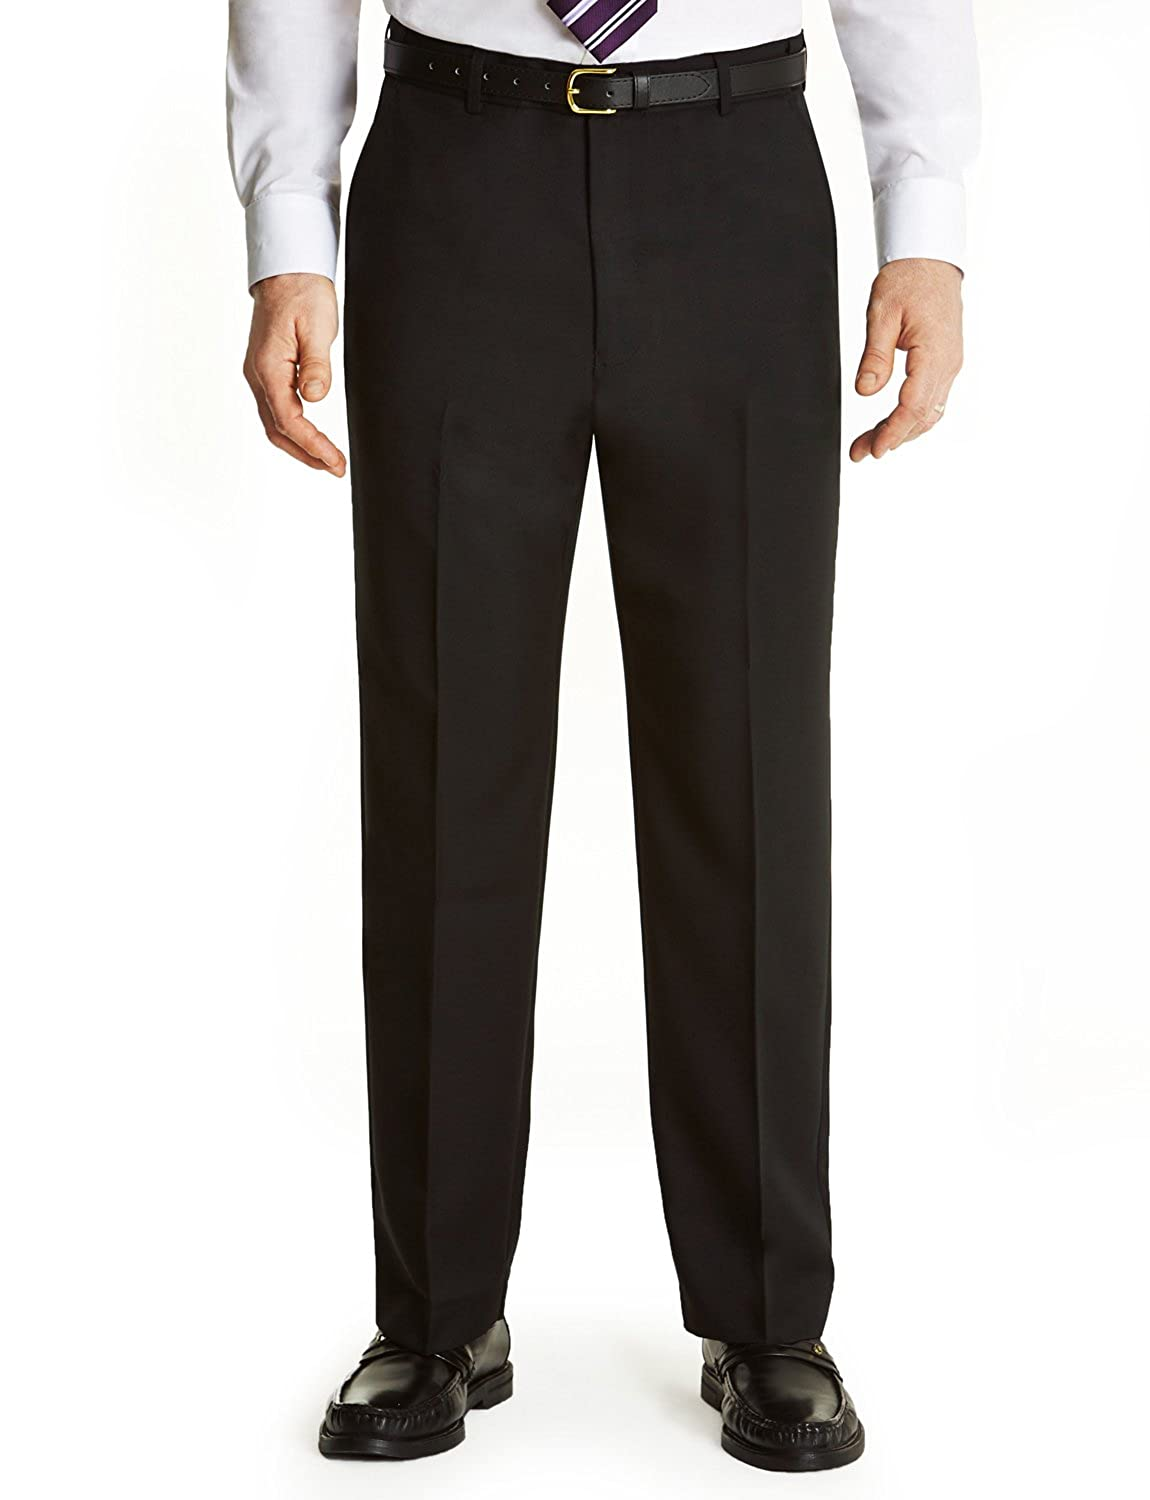 4975ad49978849 Farah Mens Flex Trouser Pants with Self-Adjusting Waistband: Amazon.co.uk:  Clothing